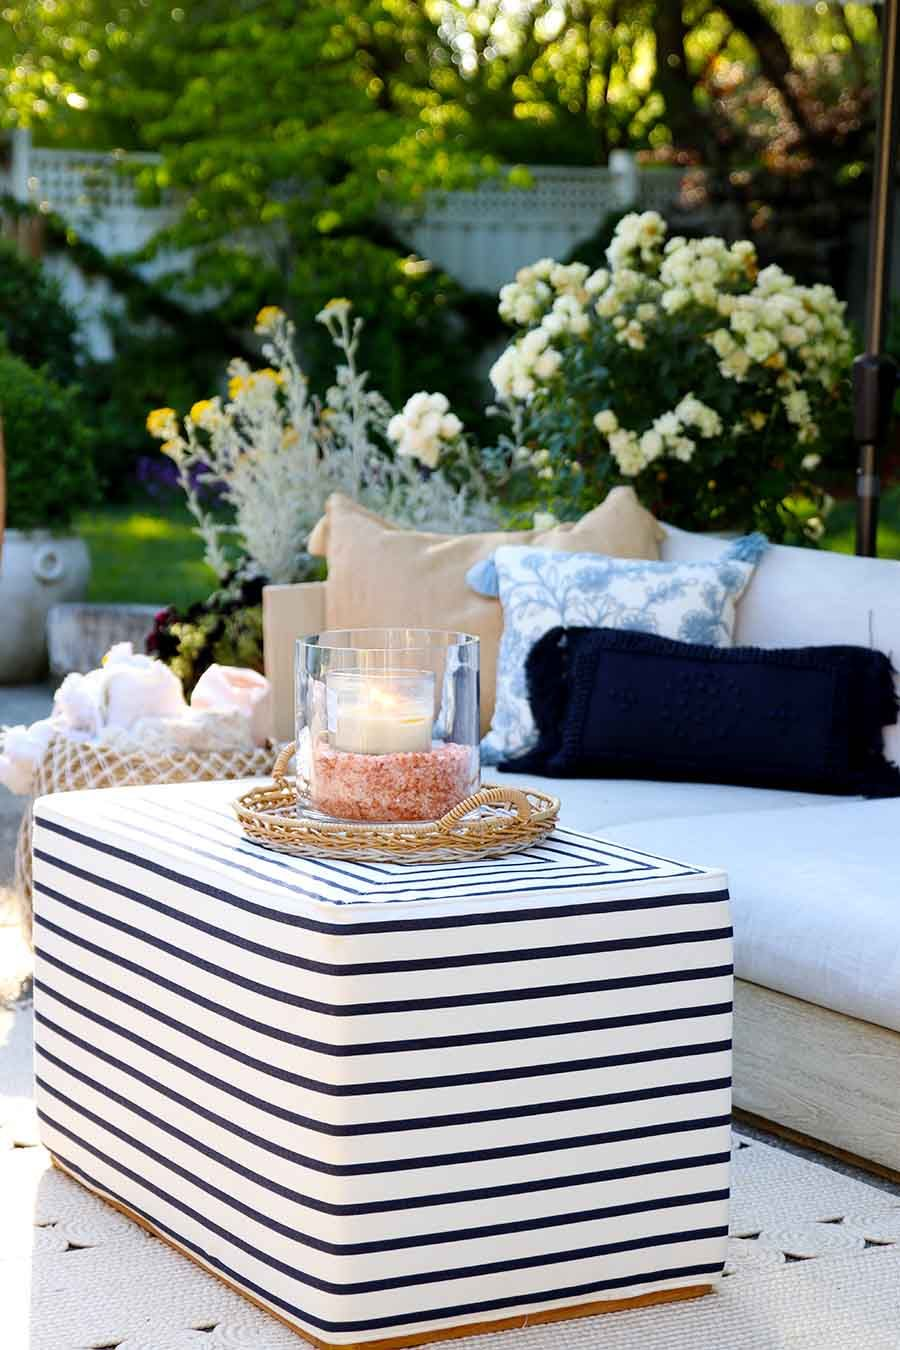 Outdoor decorating Ideas: My Summer Porch and Patio   Summer ...